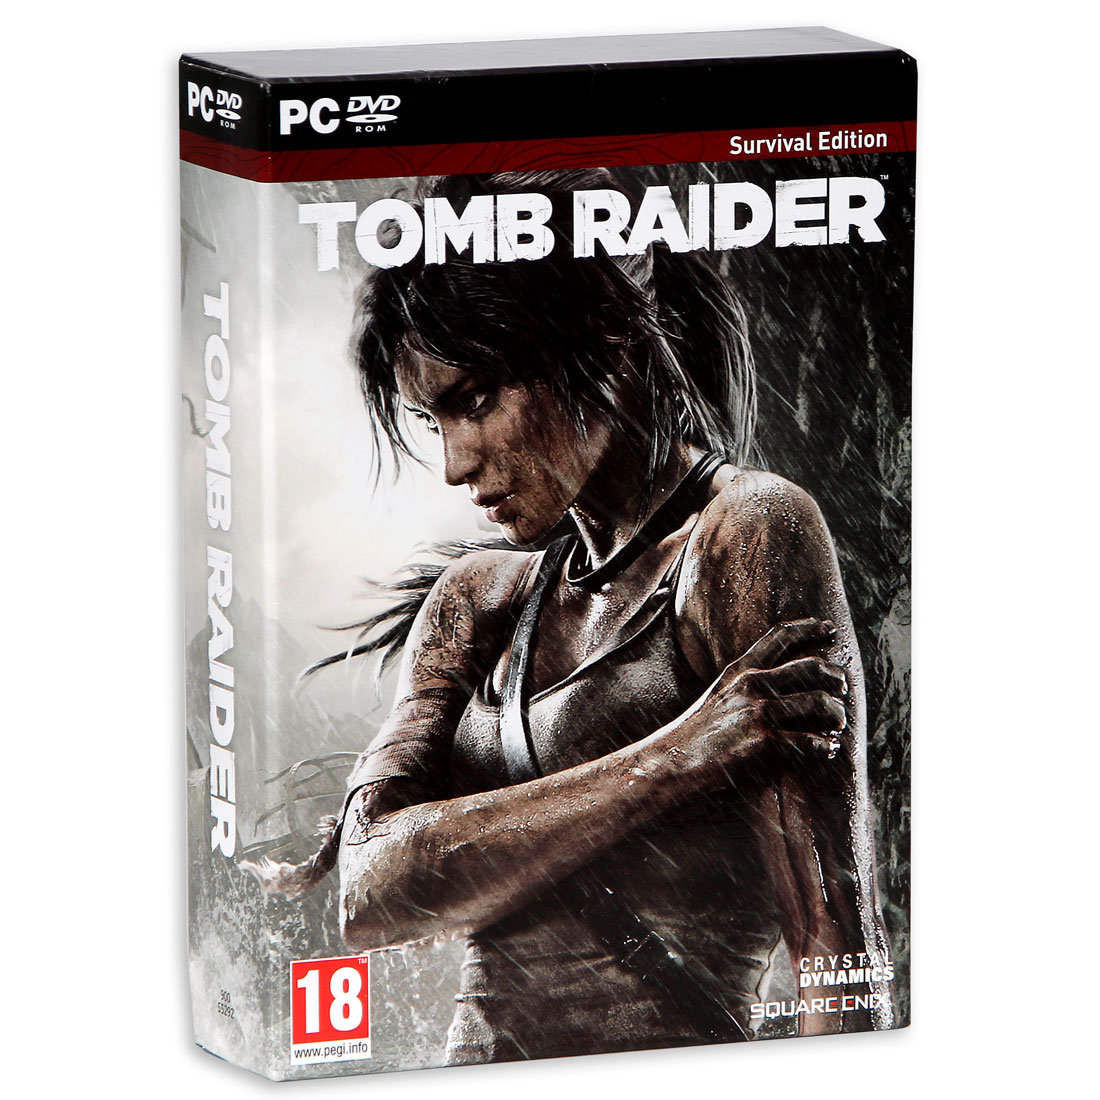 Trainer of tomb raider 2013 to make  nude images